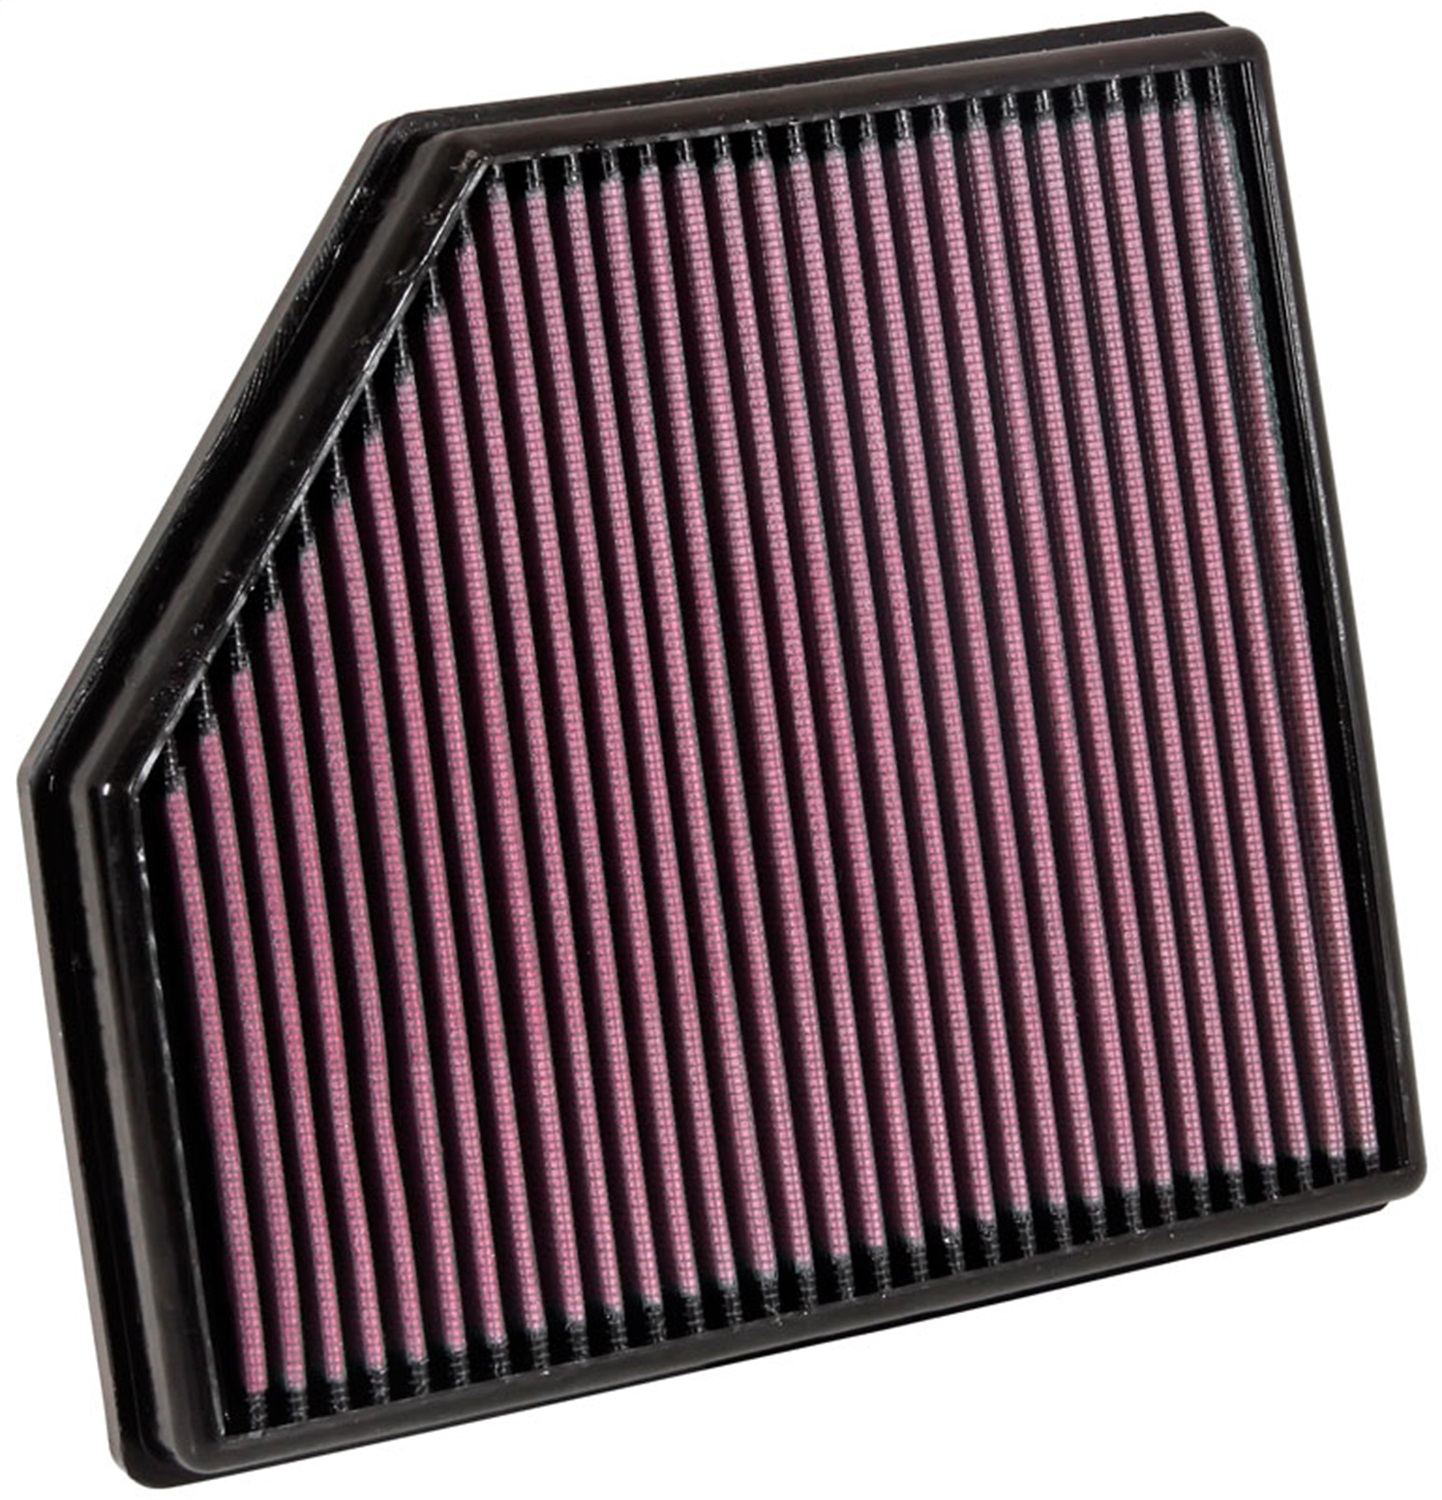 K&N Filters 33-2418 Air Filter Fits 90-14 118 S60 S80 V70 XC60 XC70 33-2418